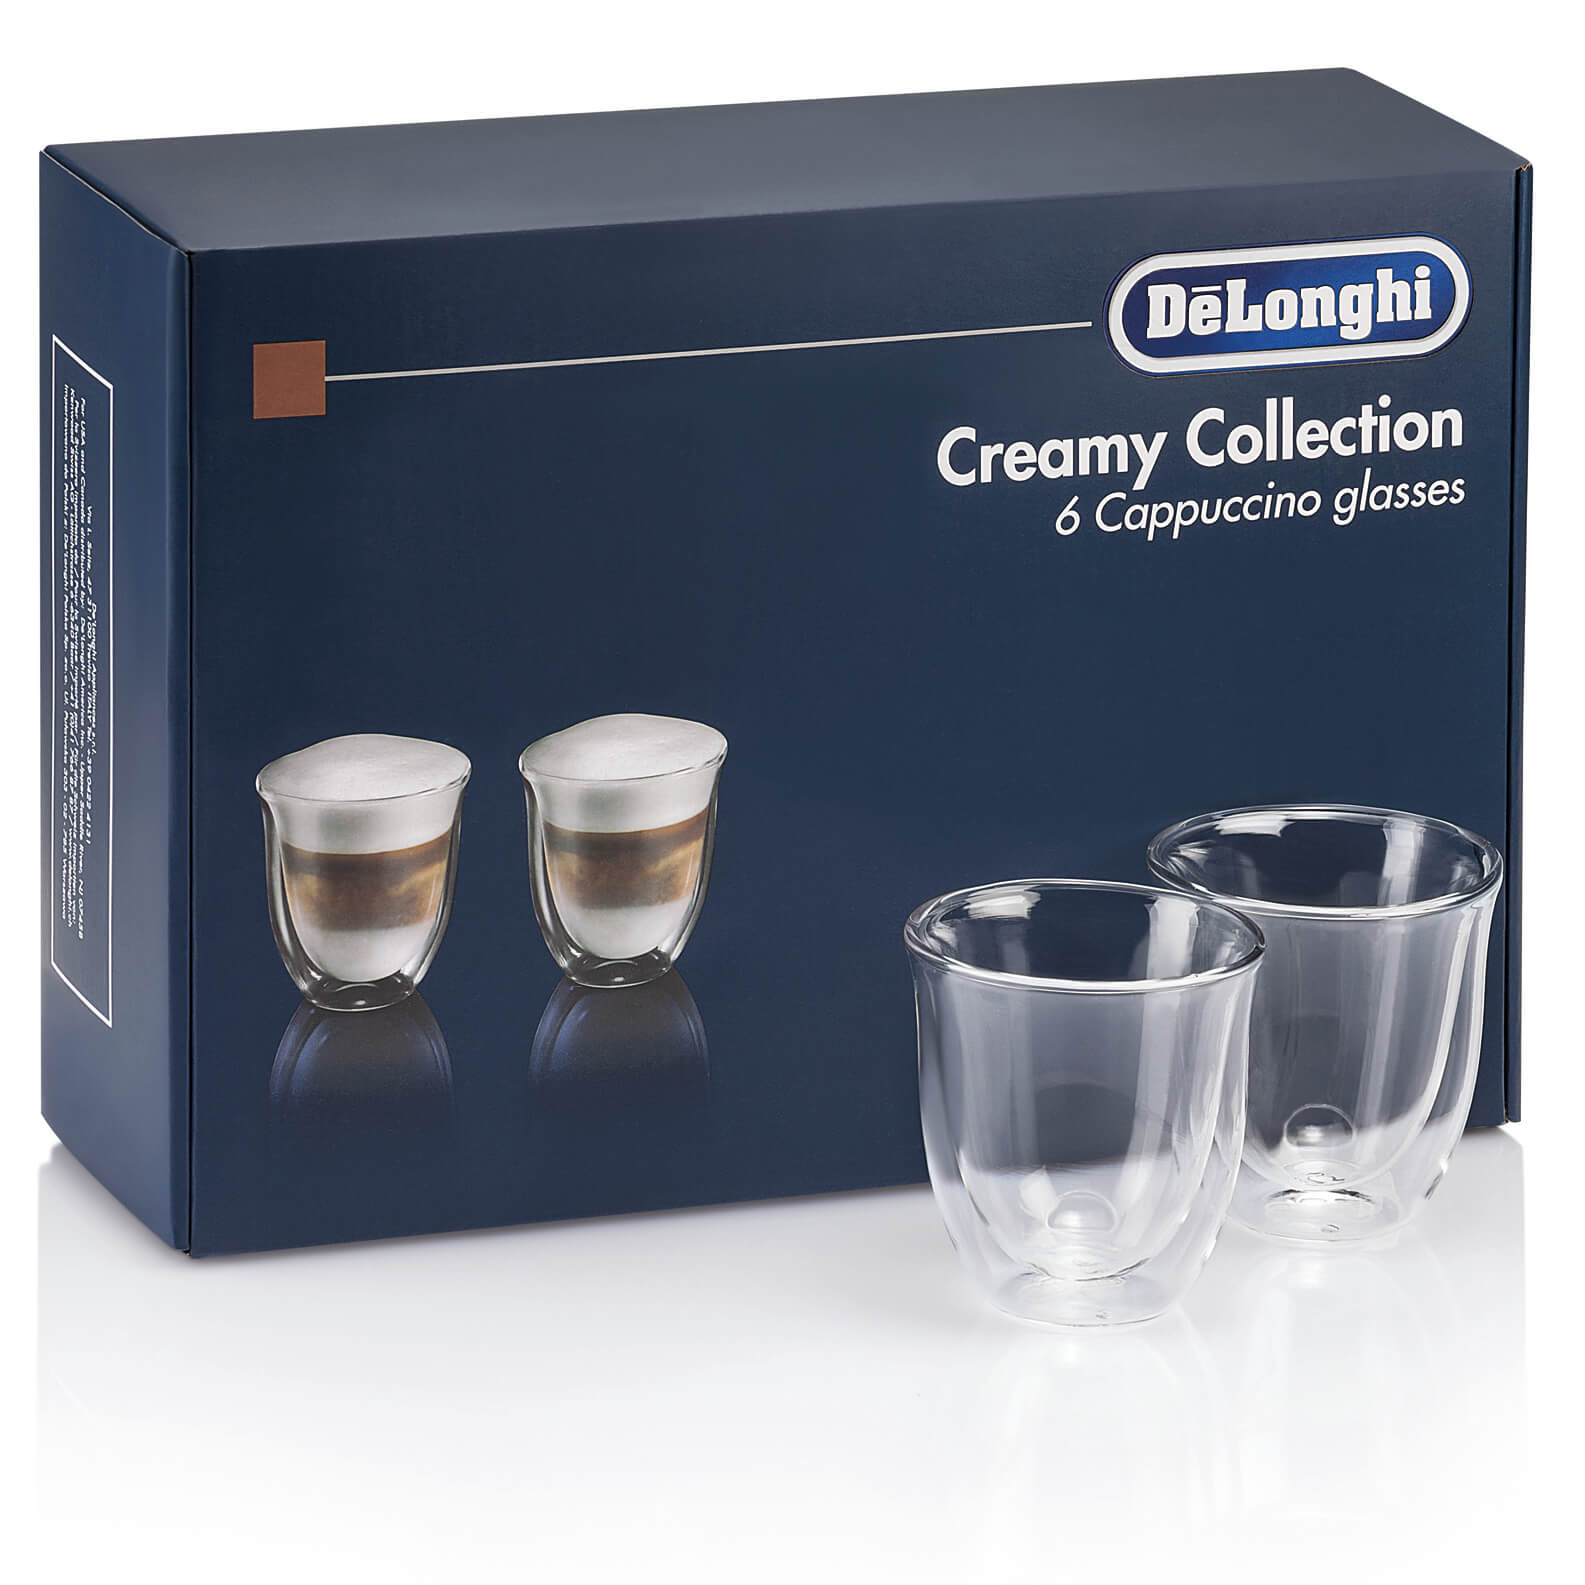 Delonghi Creamy Collection - 6 Cappuccino Glasses